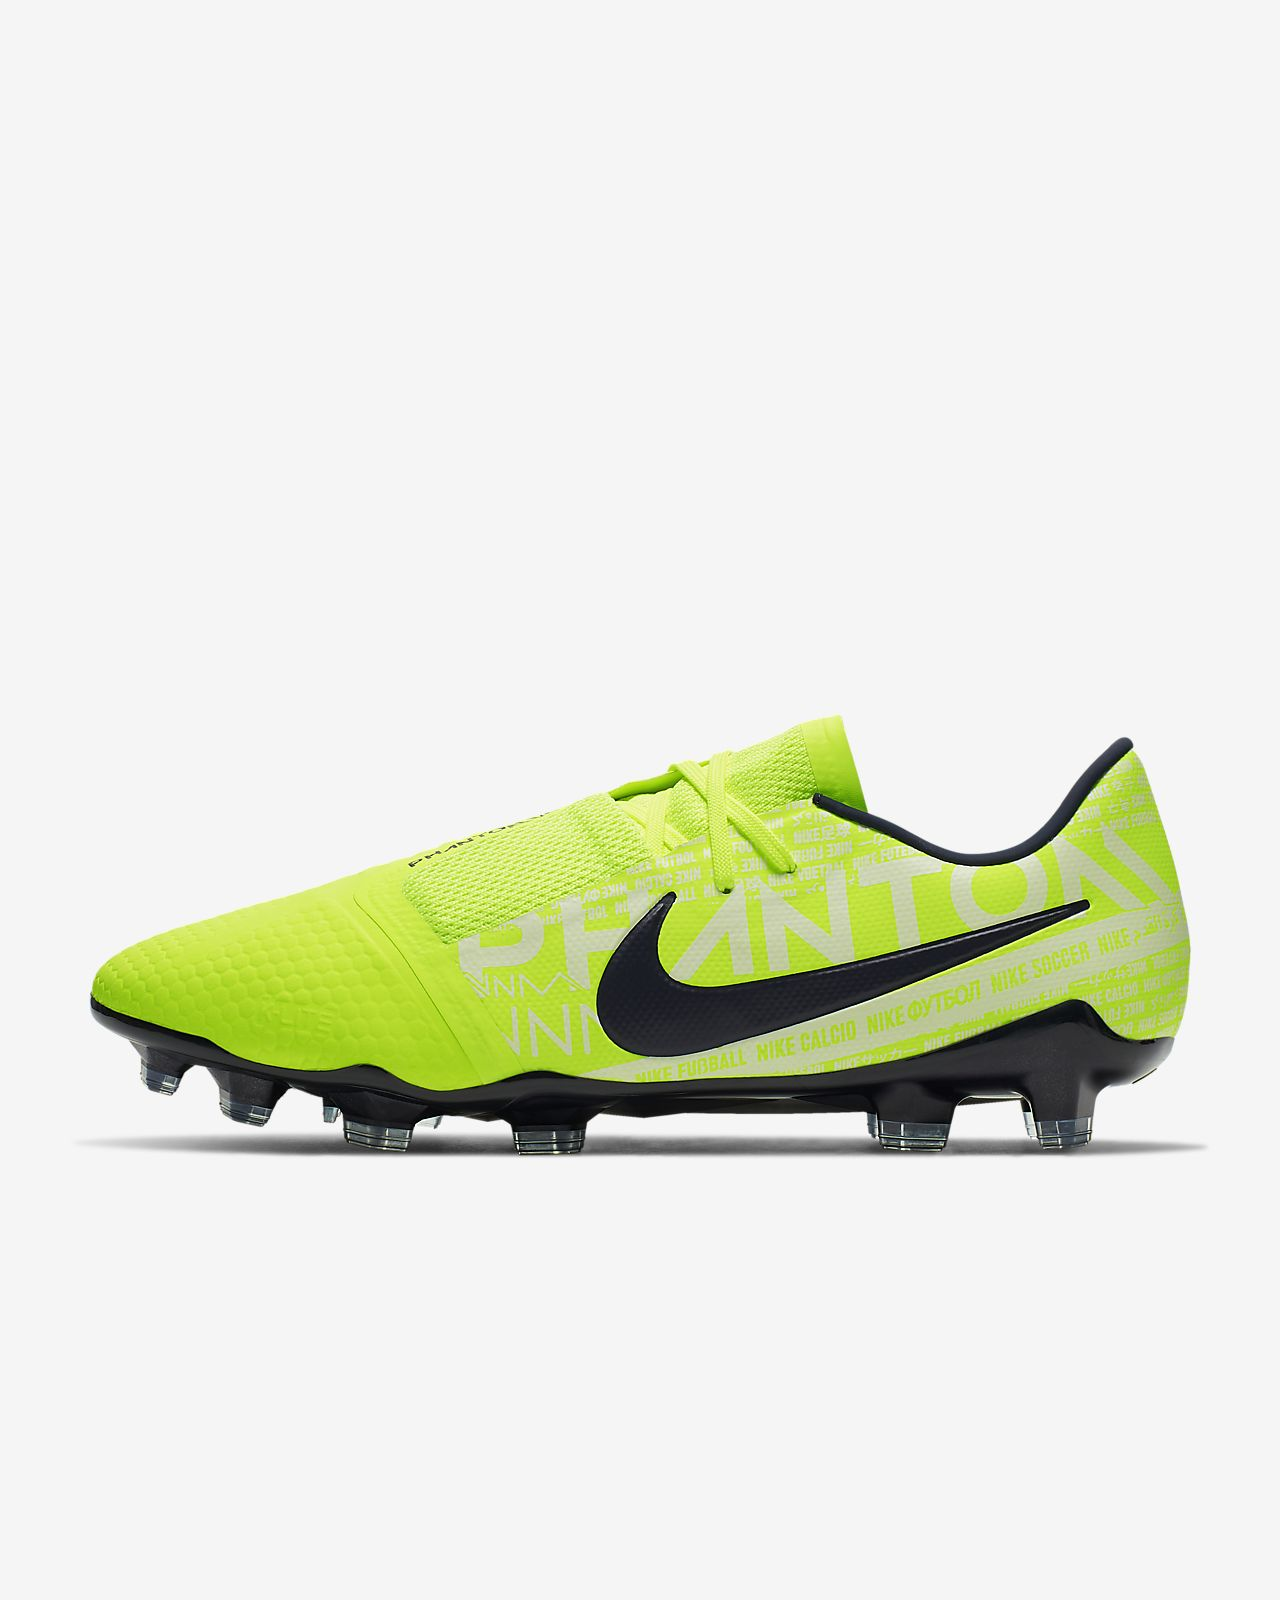 Nike Phantom Venom Pro FG Firm-Ground Football Boot